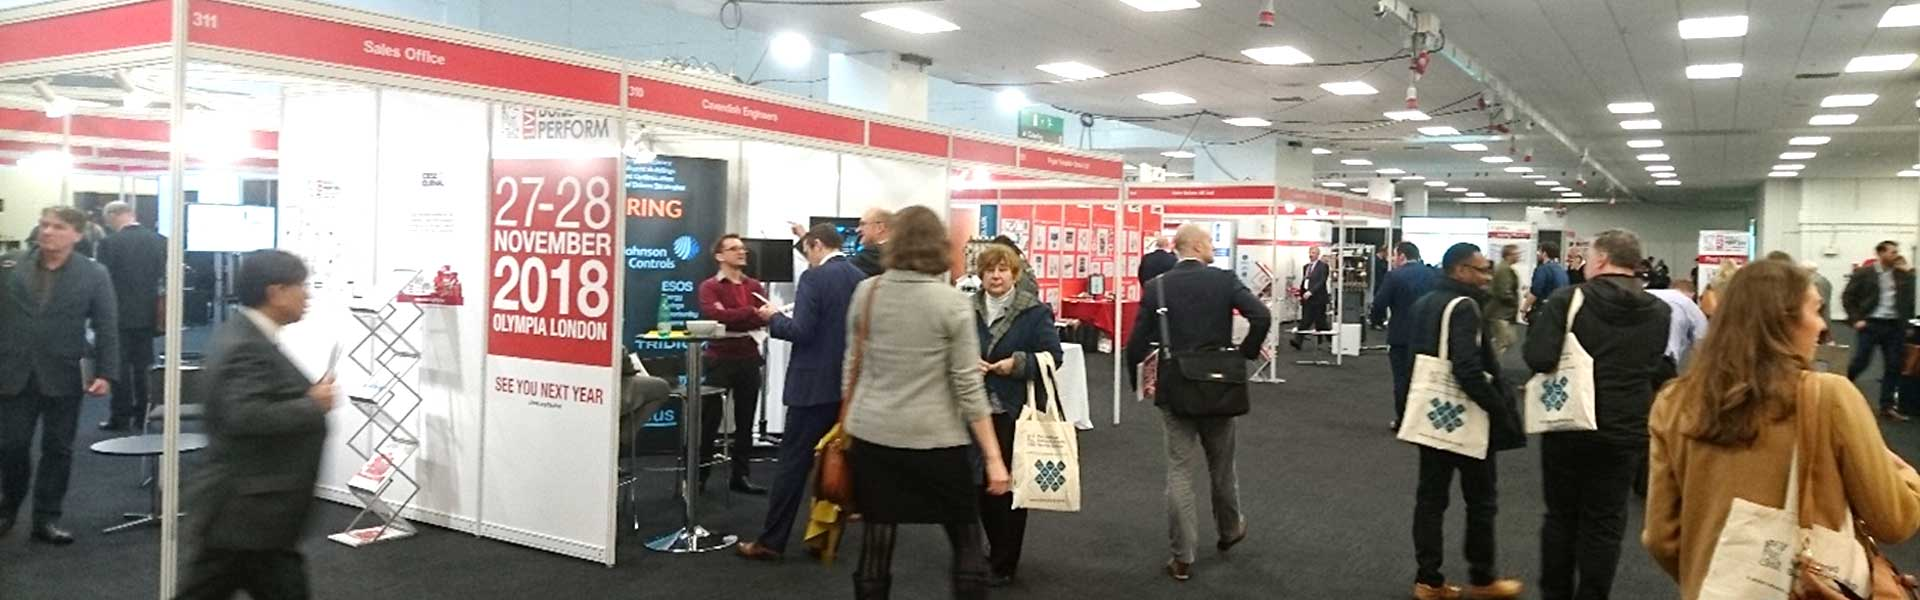 Gibbons Ultraviolet Solutions attend CIBSE Conference